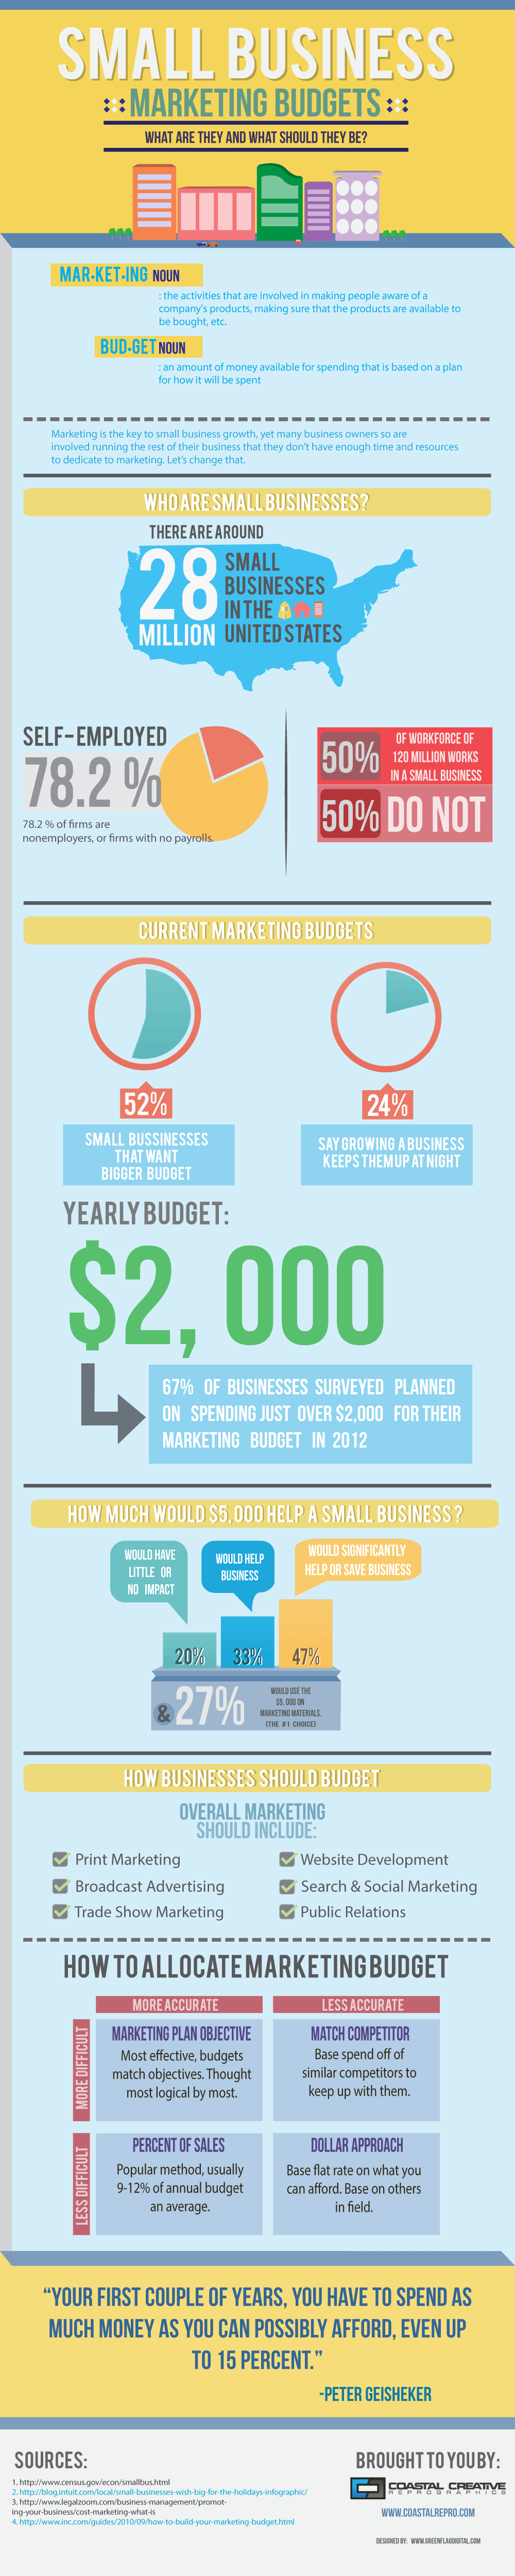 small business marketing budget infographic